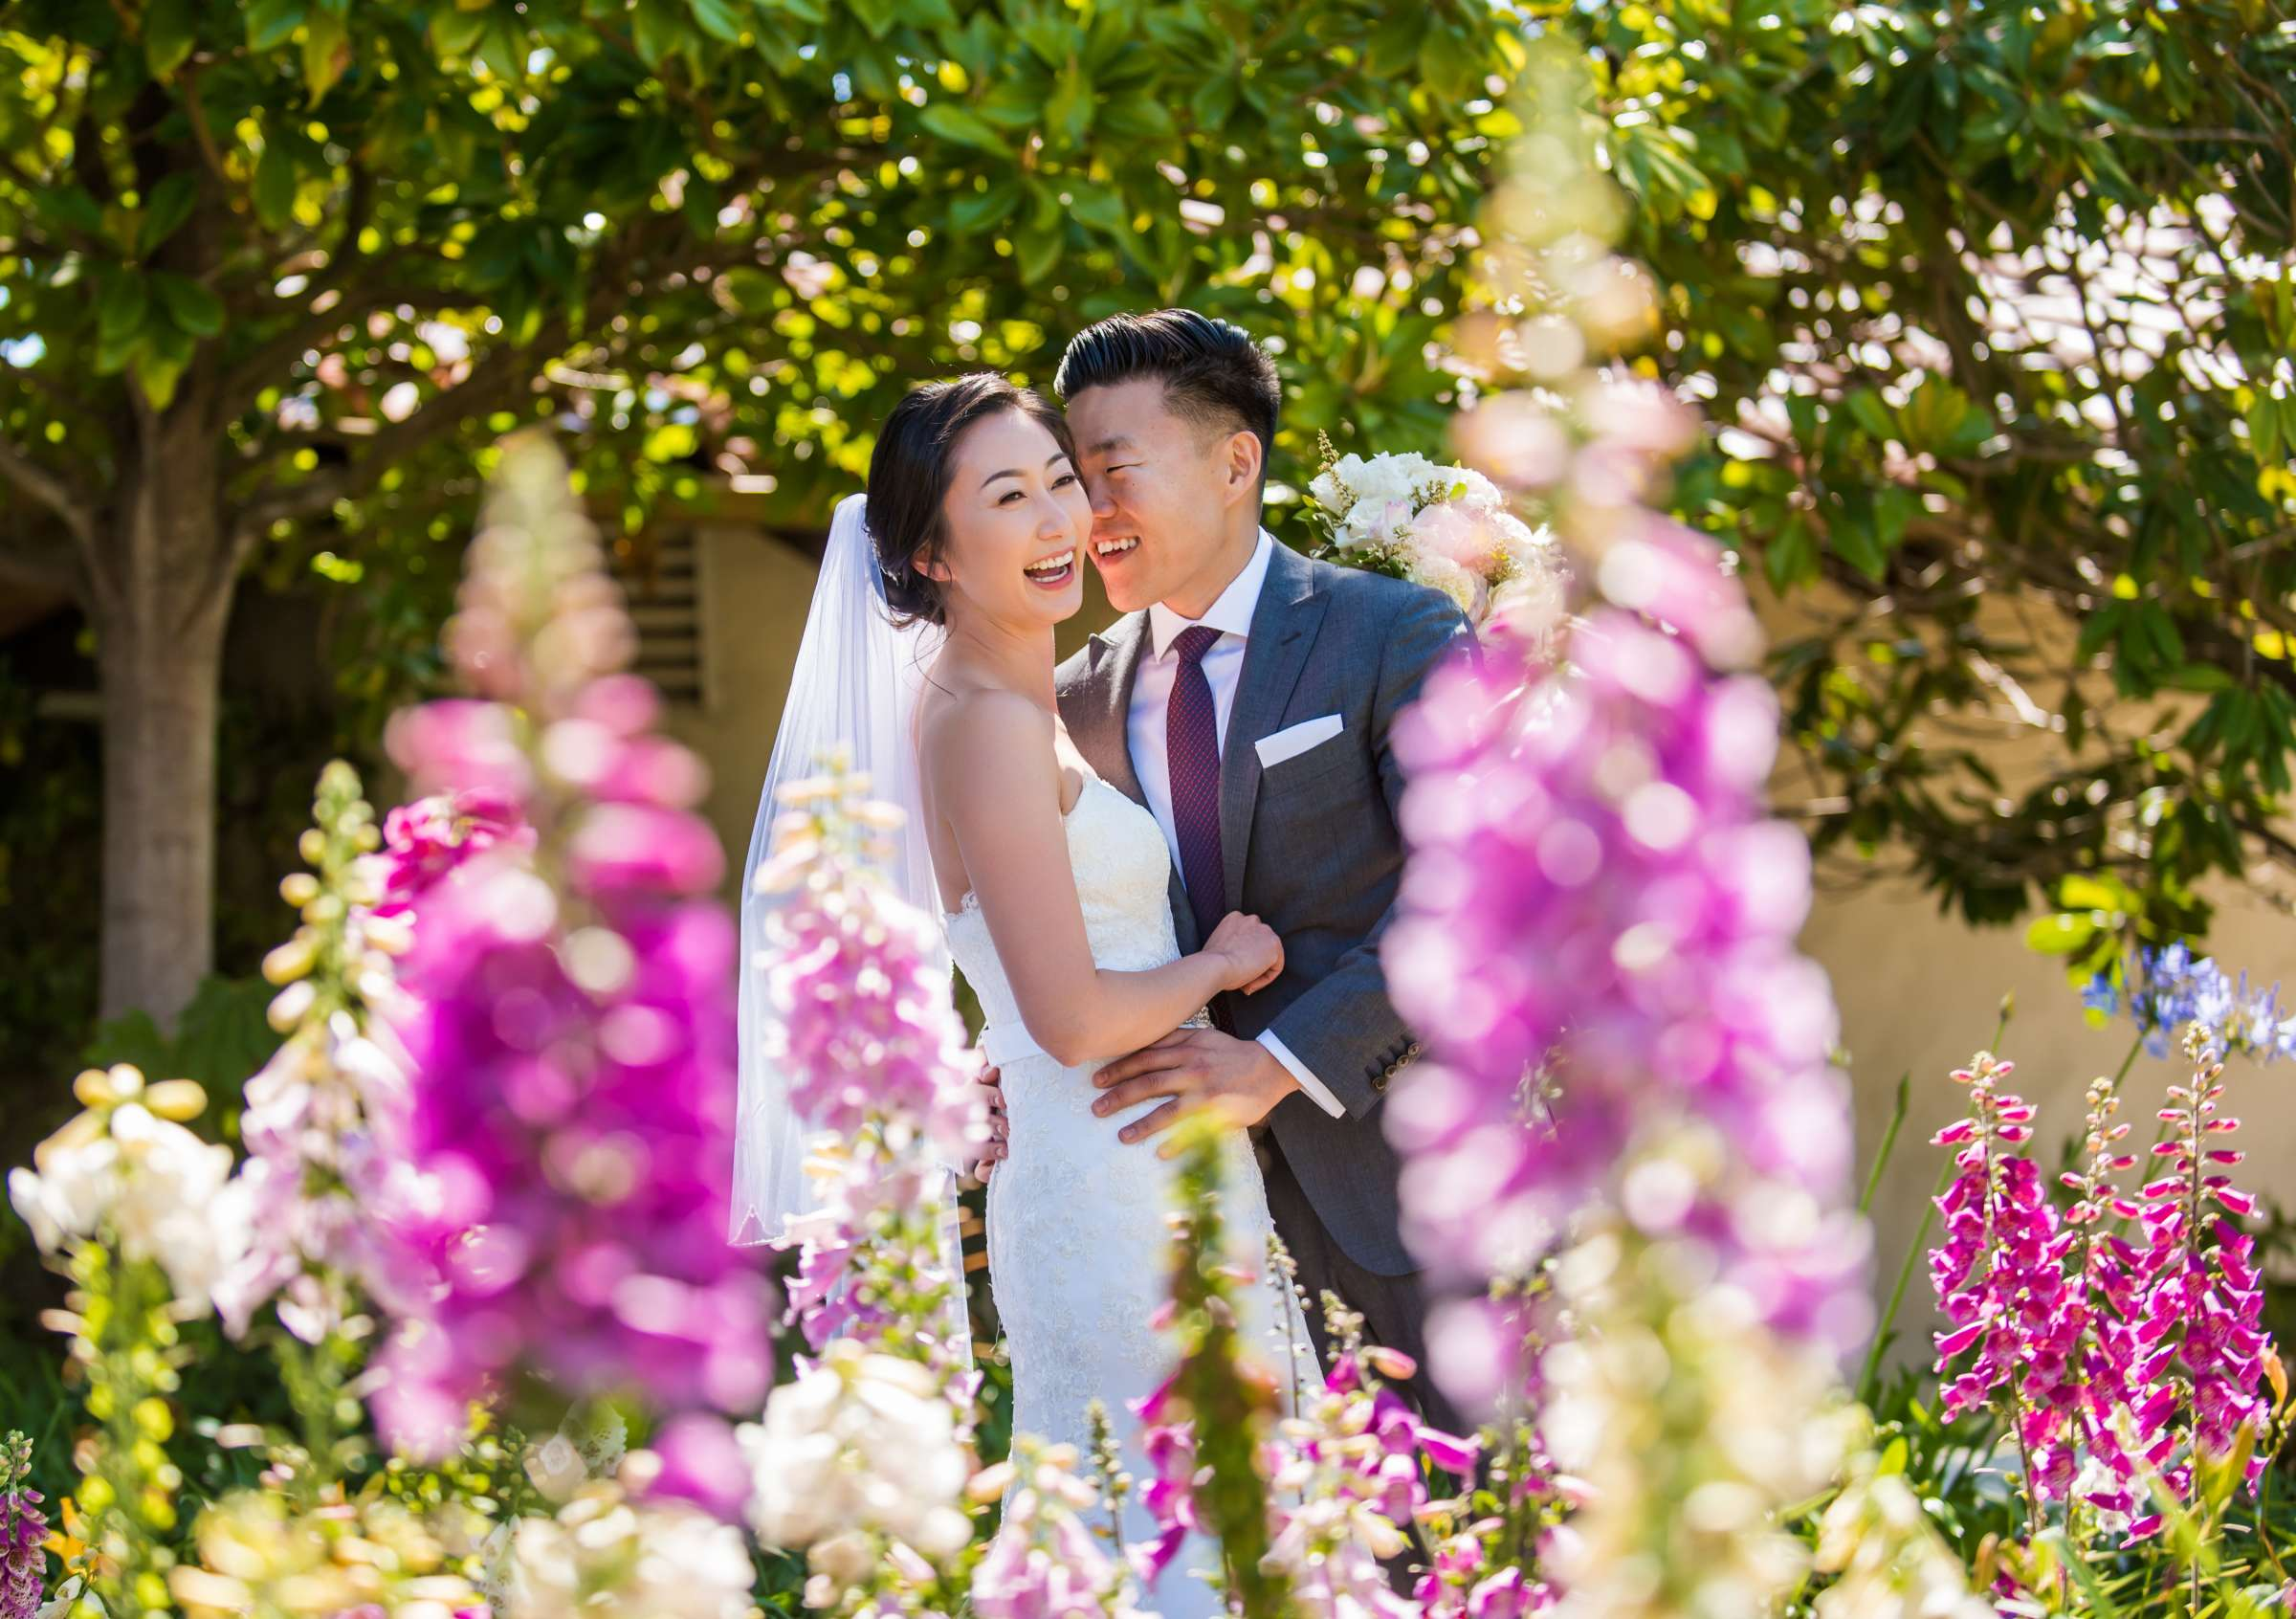 Fairbanks Ranch Country Club Wedding, Sarah and Daniel Wedding Photo #25 by True Photography